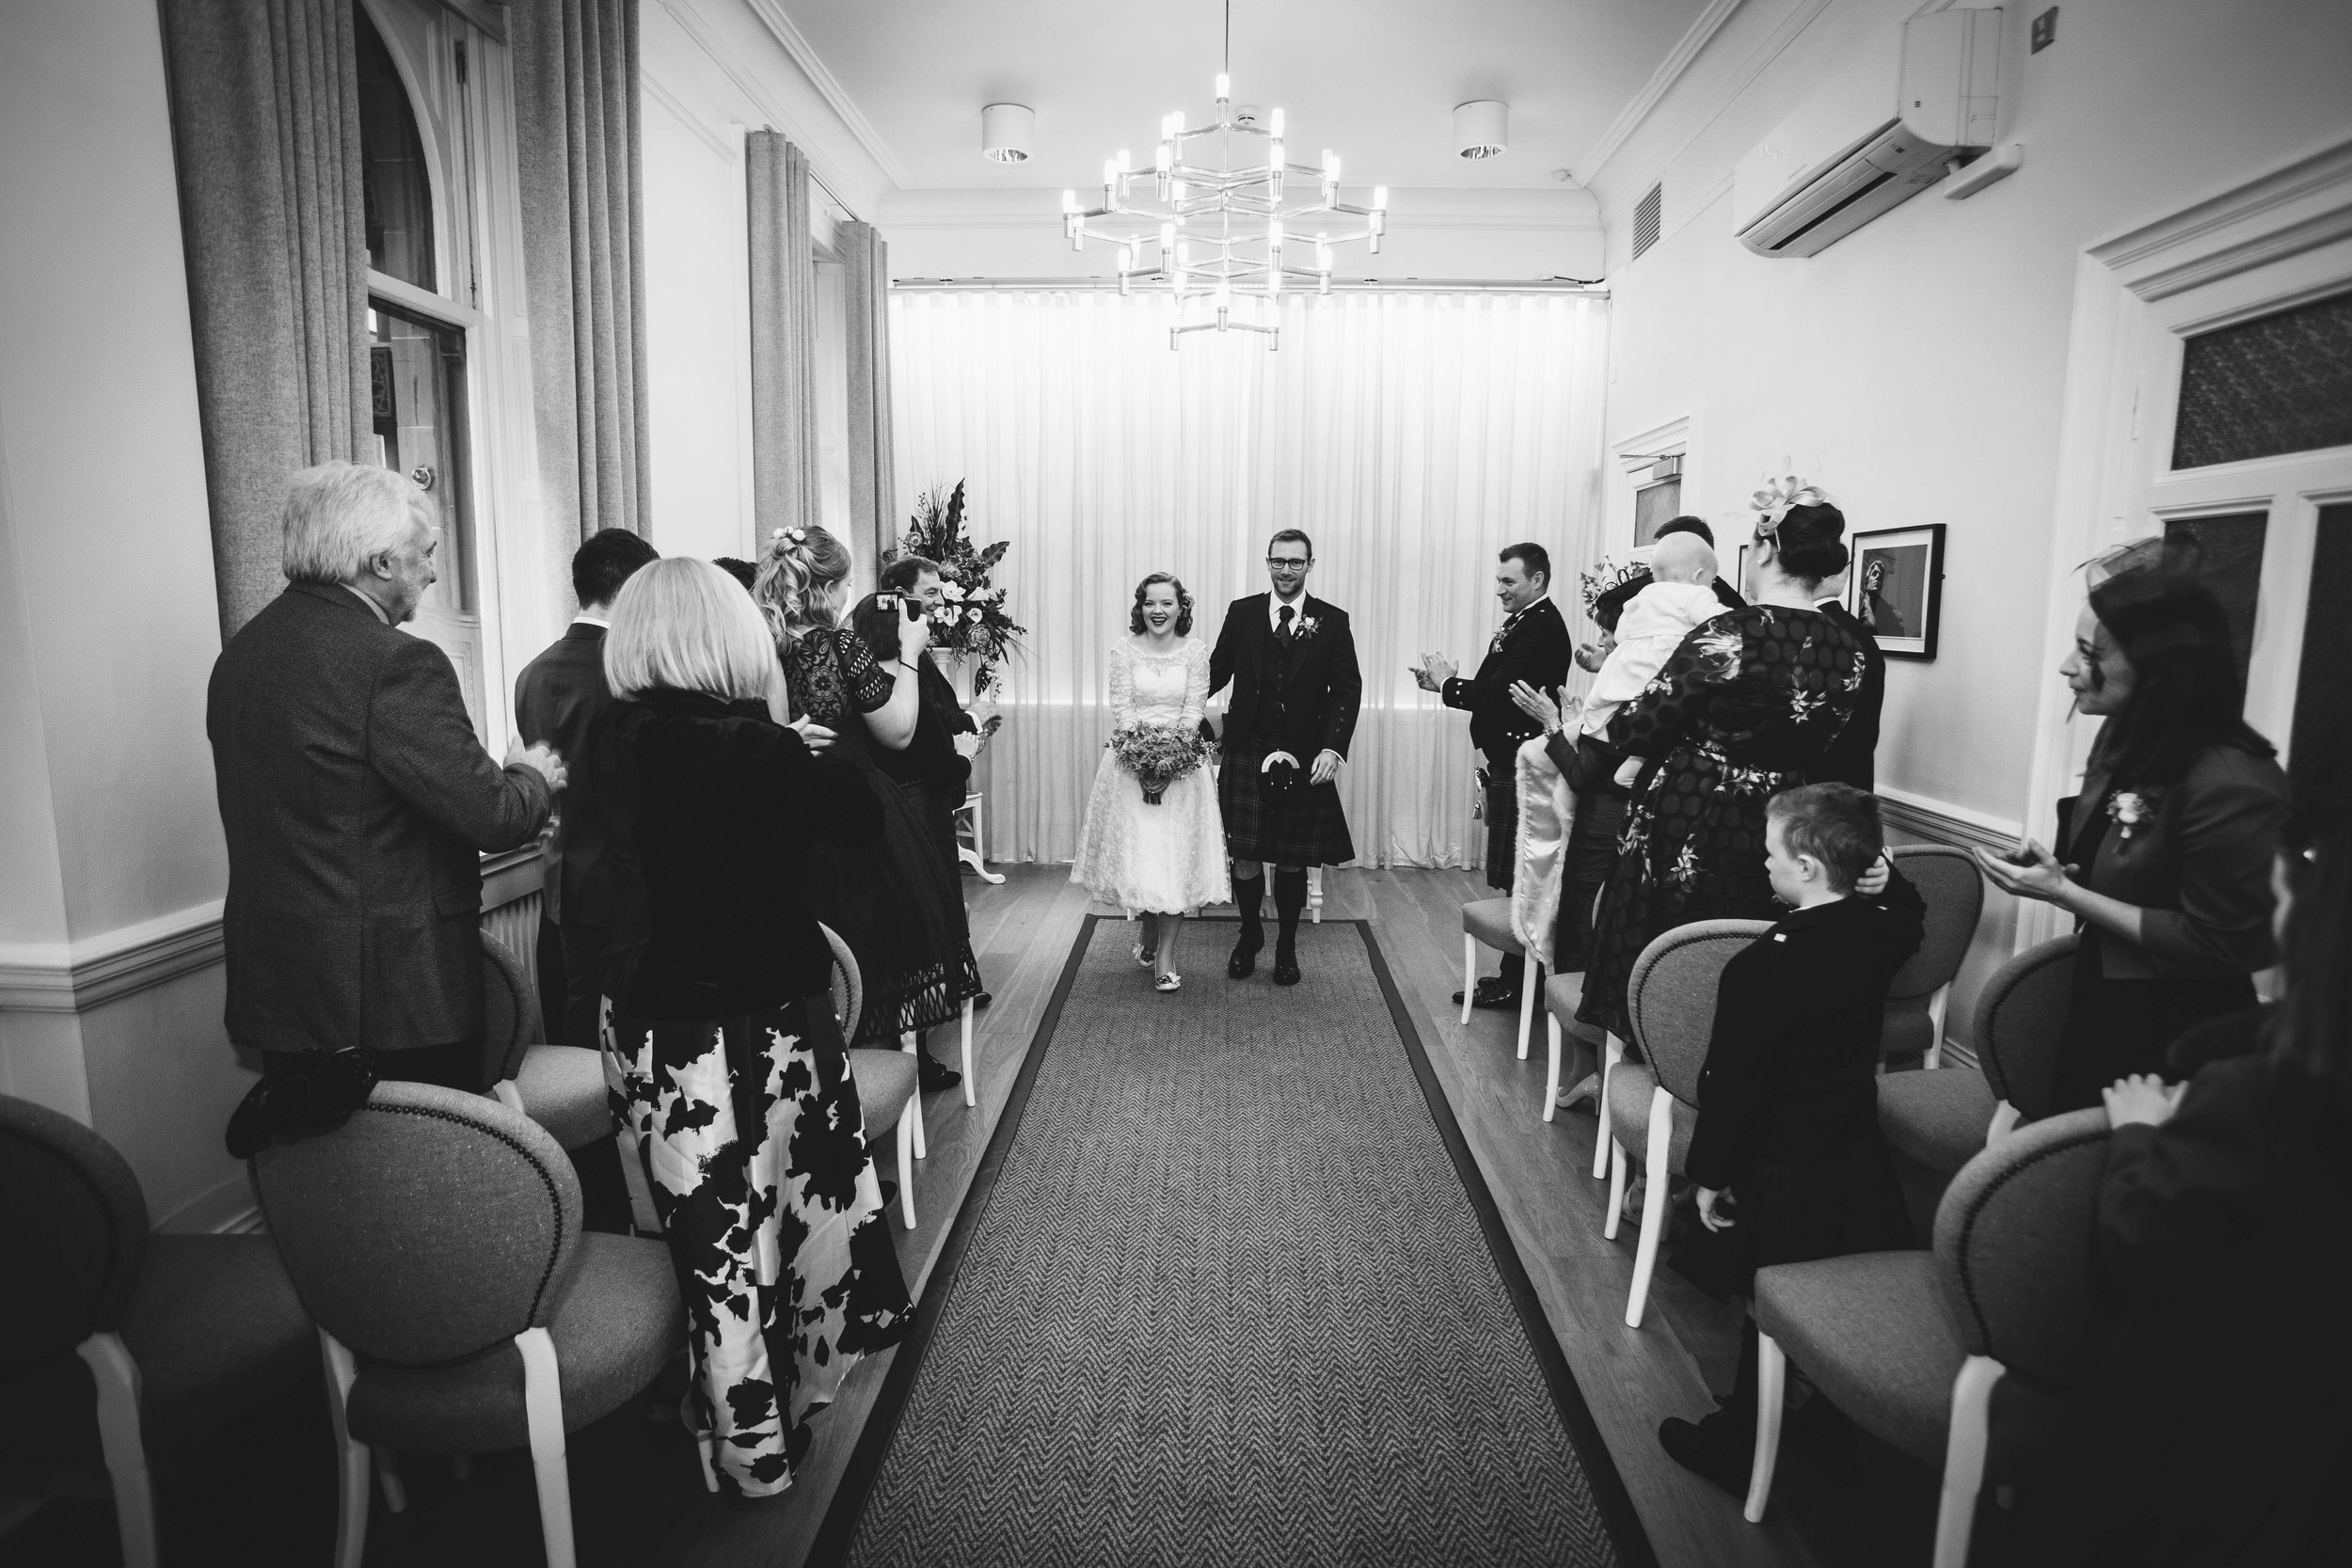 Sophie & Graeme Wedding Nov 2018  129  web.JPG